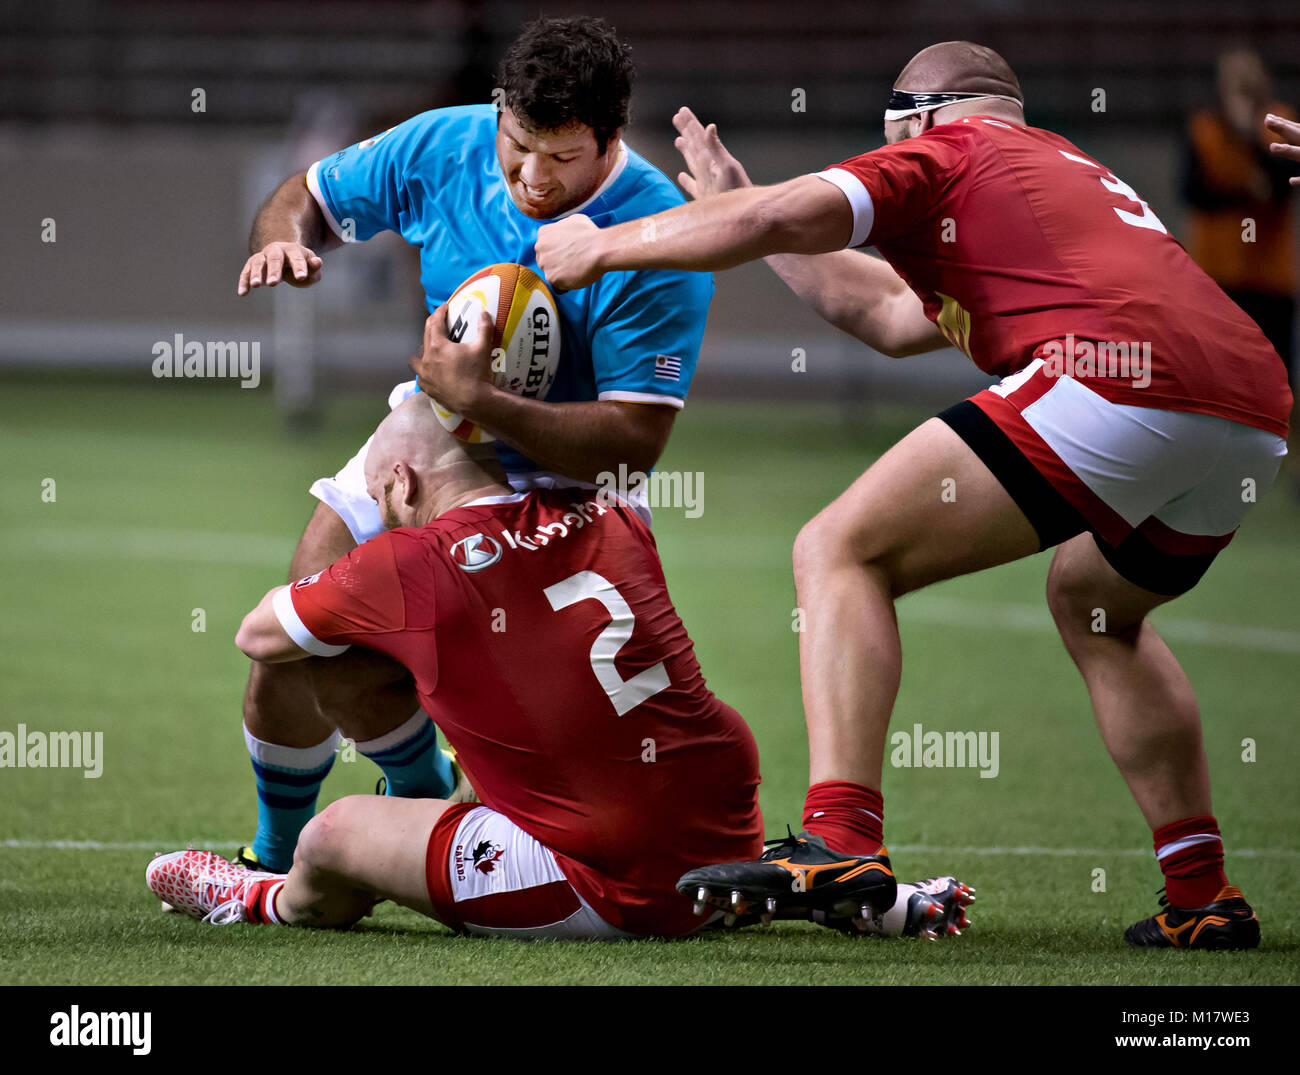 Vancouver, Canada. 27th Jan, 2018. Uruguay's Mario Sagario (L) is stopped by Canada's Ray Barkwill (Bottom) - Stock Image